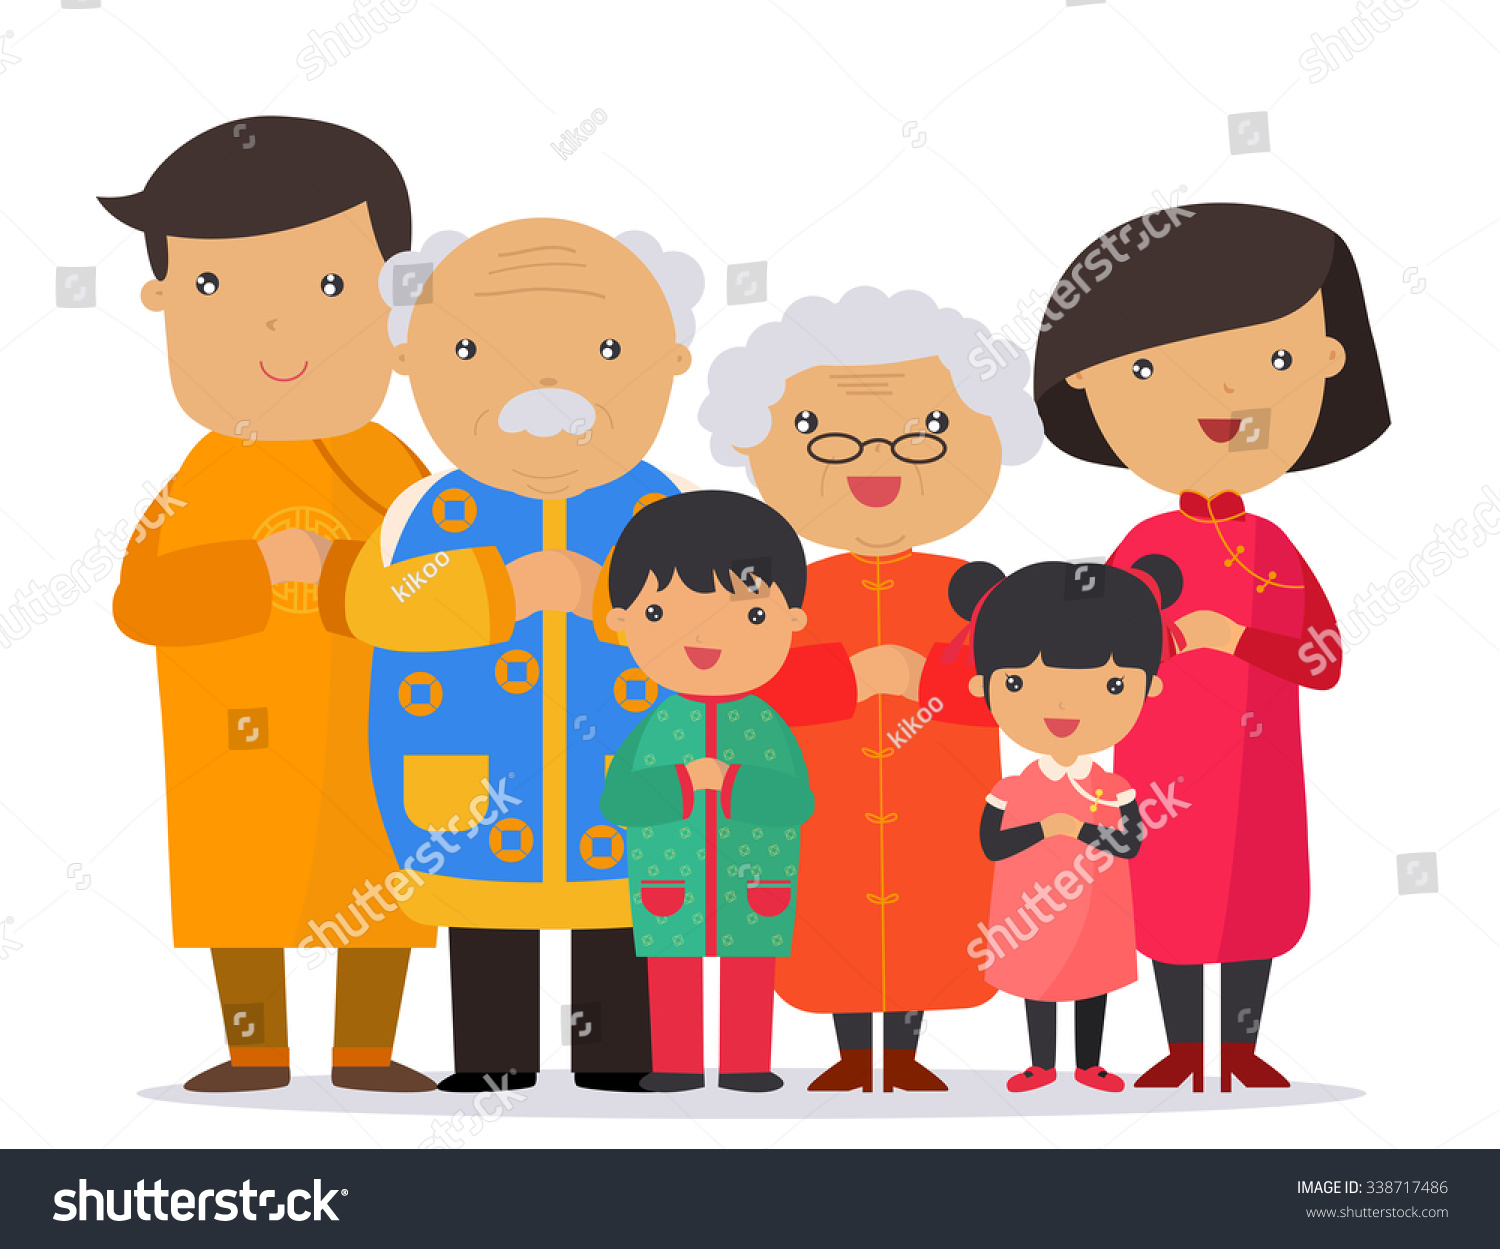 Chinese Family Clipart.